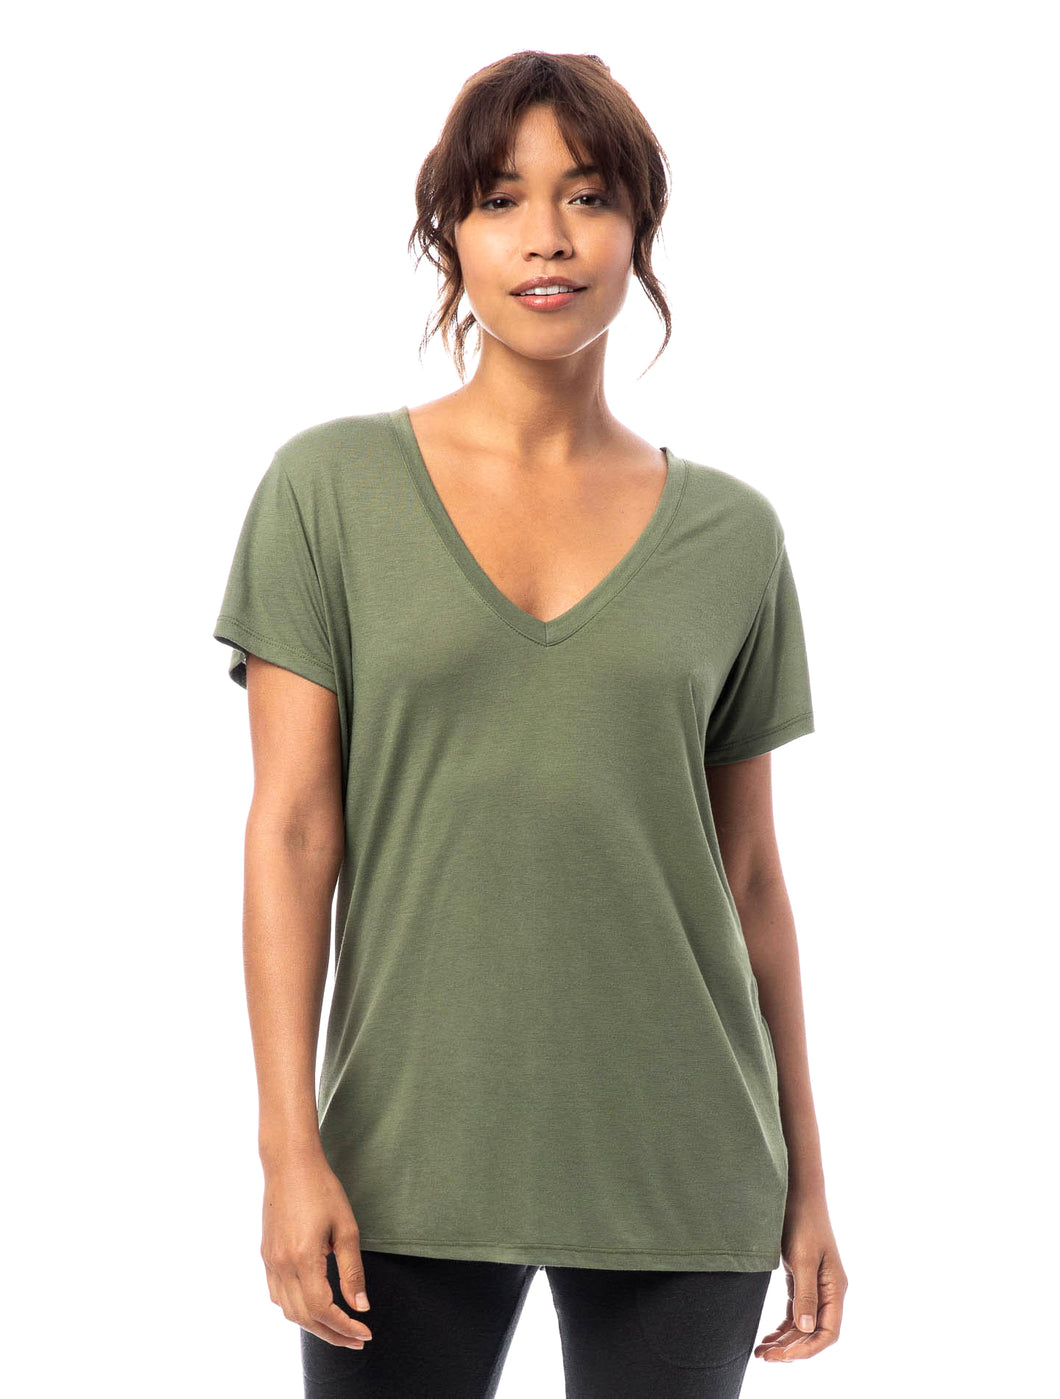 SLINKY V NECK - ARMY GREEN